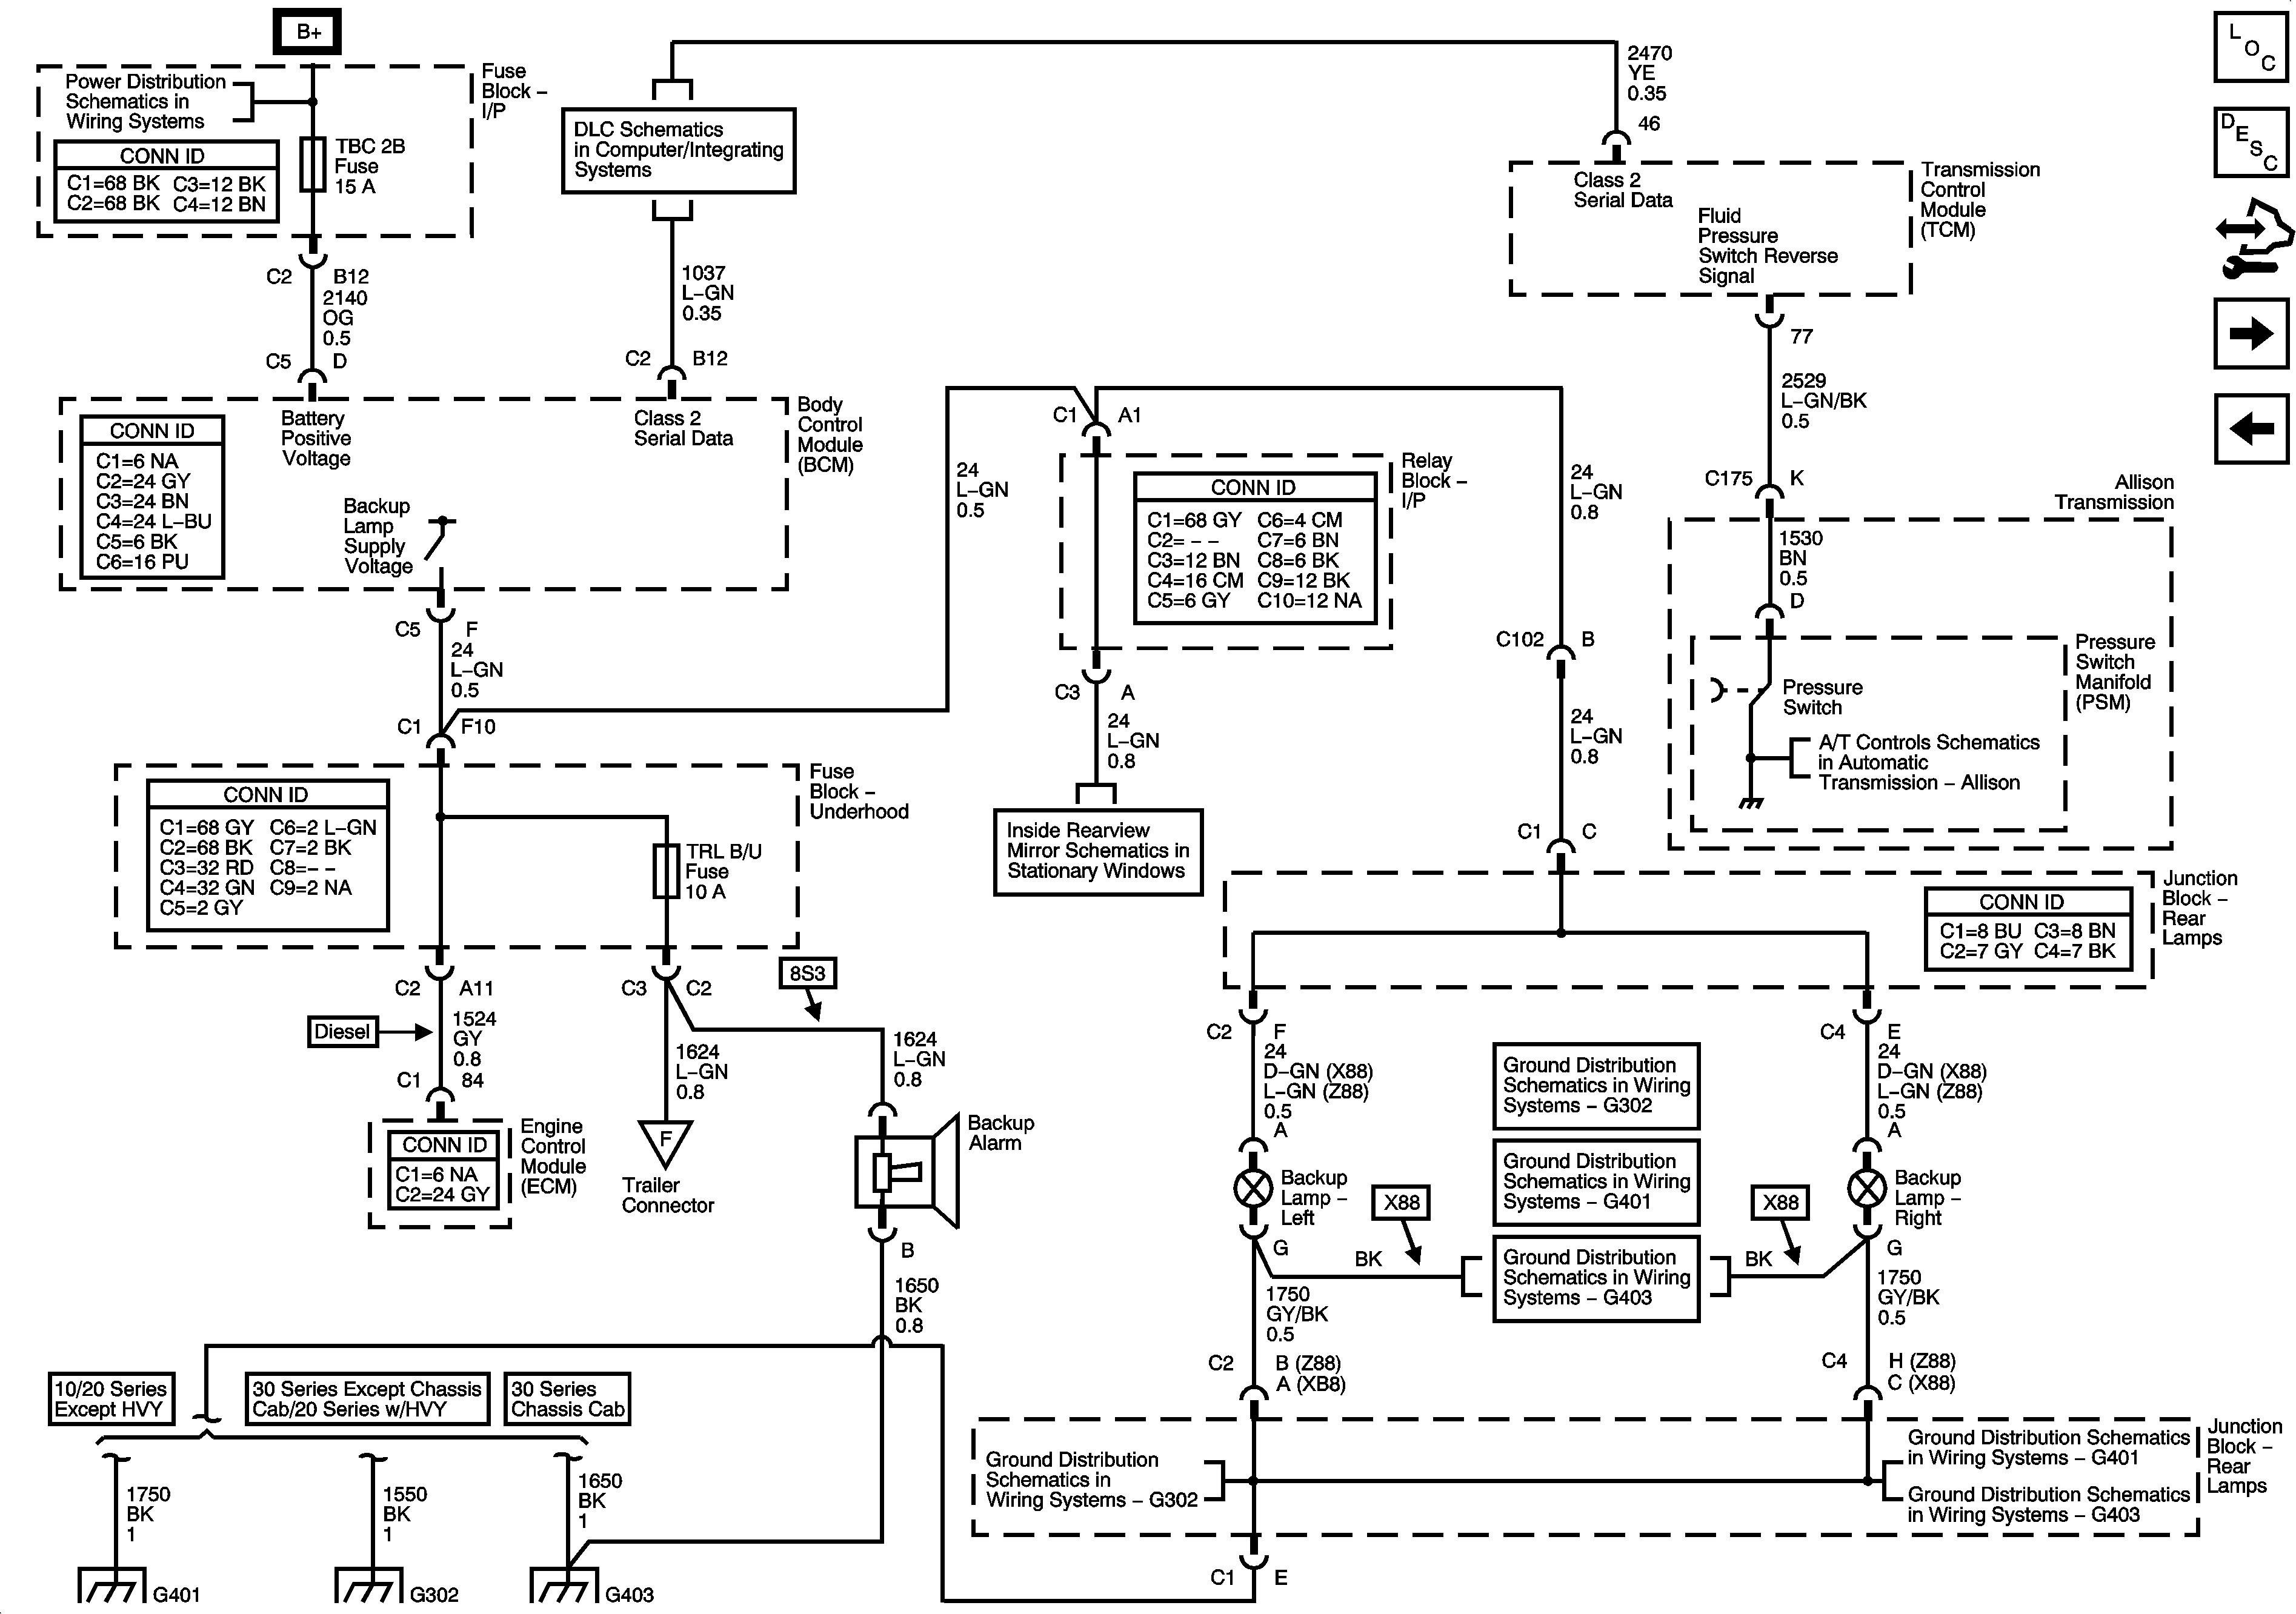 1999 ford Expedition Engine Diagram Awesome Chevy Silverado Battery Designs Of 1999 ford Expedition Engine Diagram